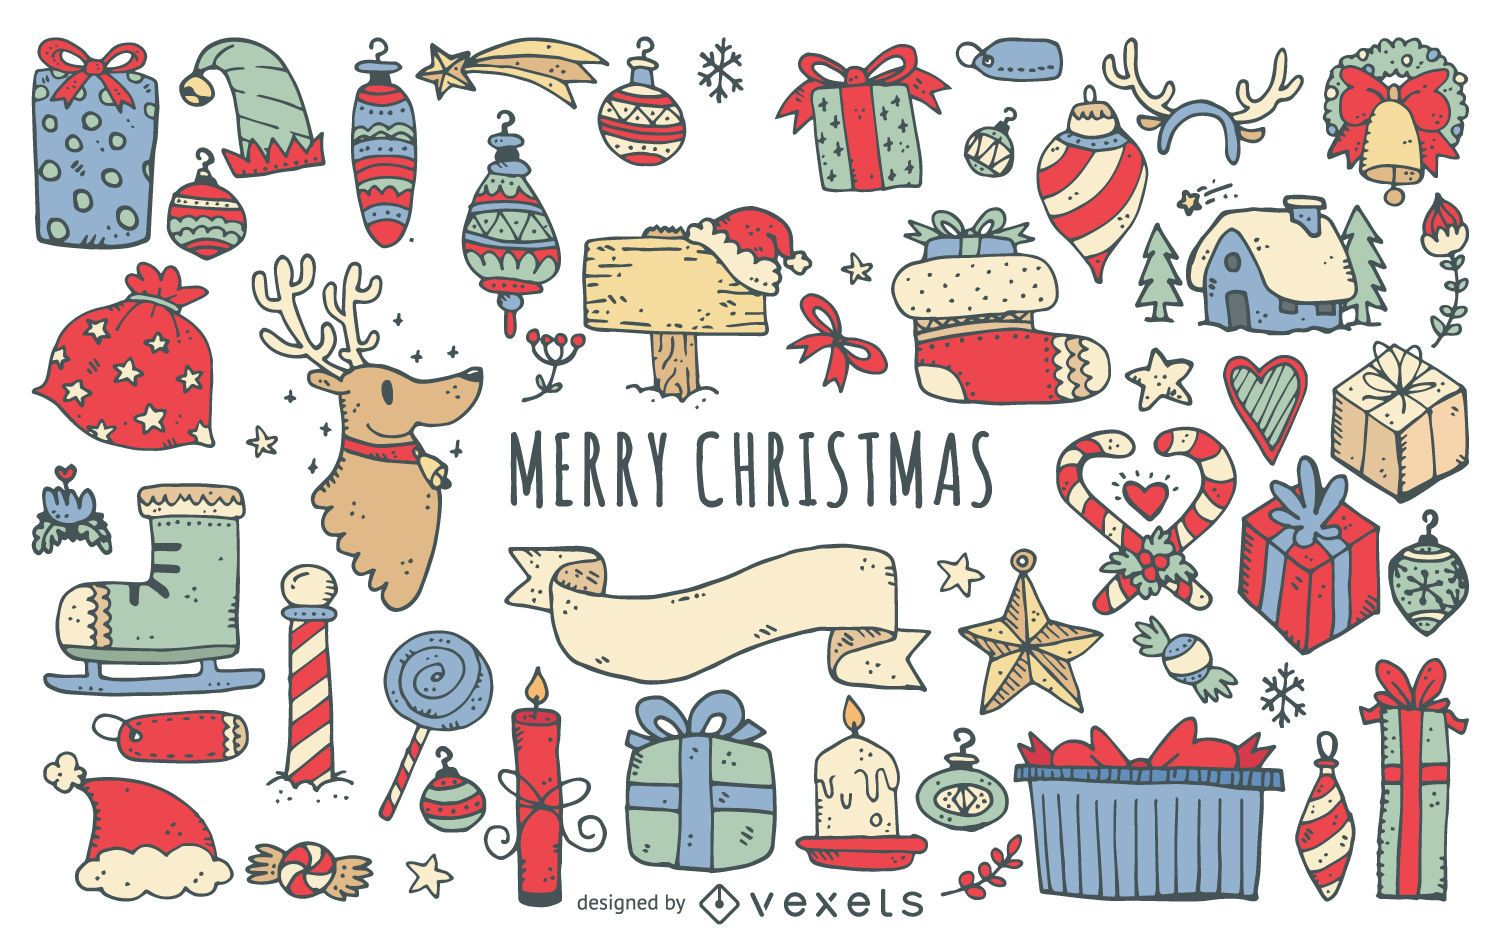 Merry Christmas doodles collection